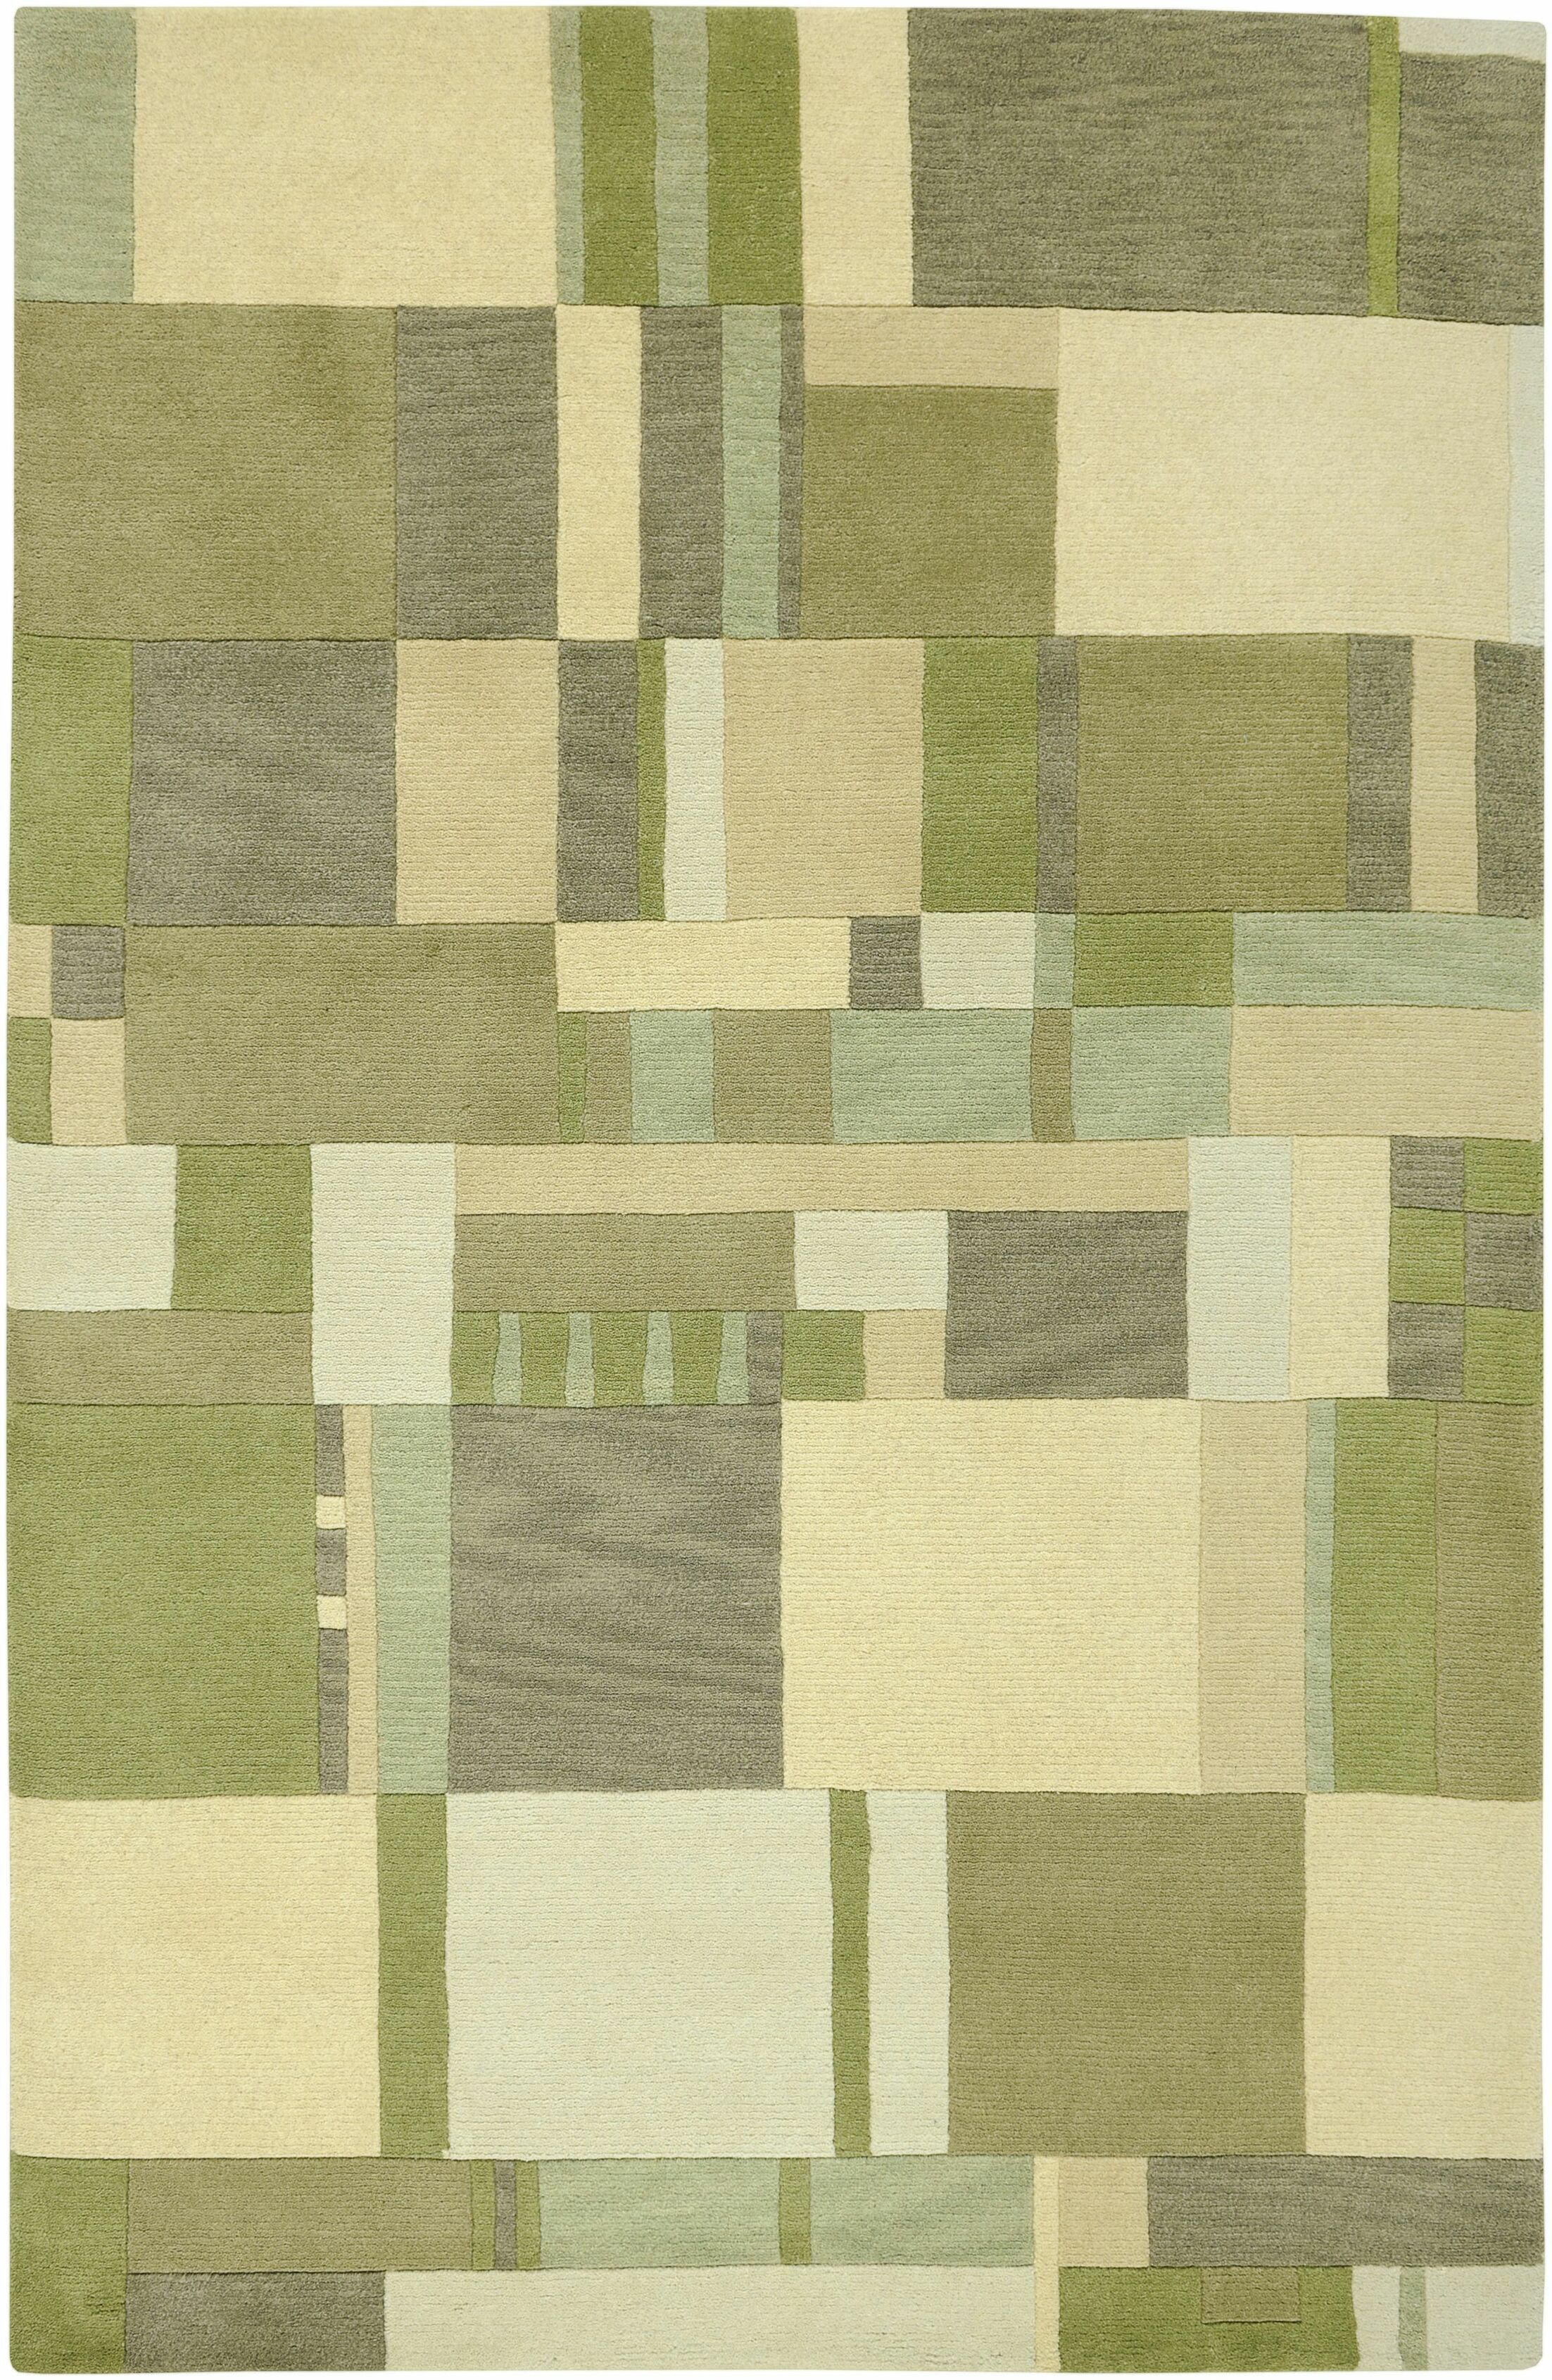 Leone Hand-Knotted Green/Tan Area Rug Rug Size: Rectangle 5' x 8'